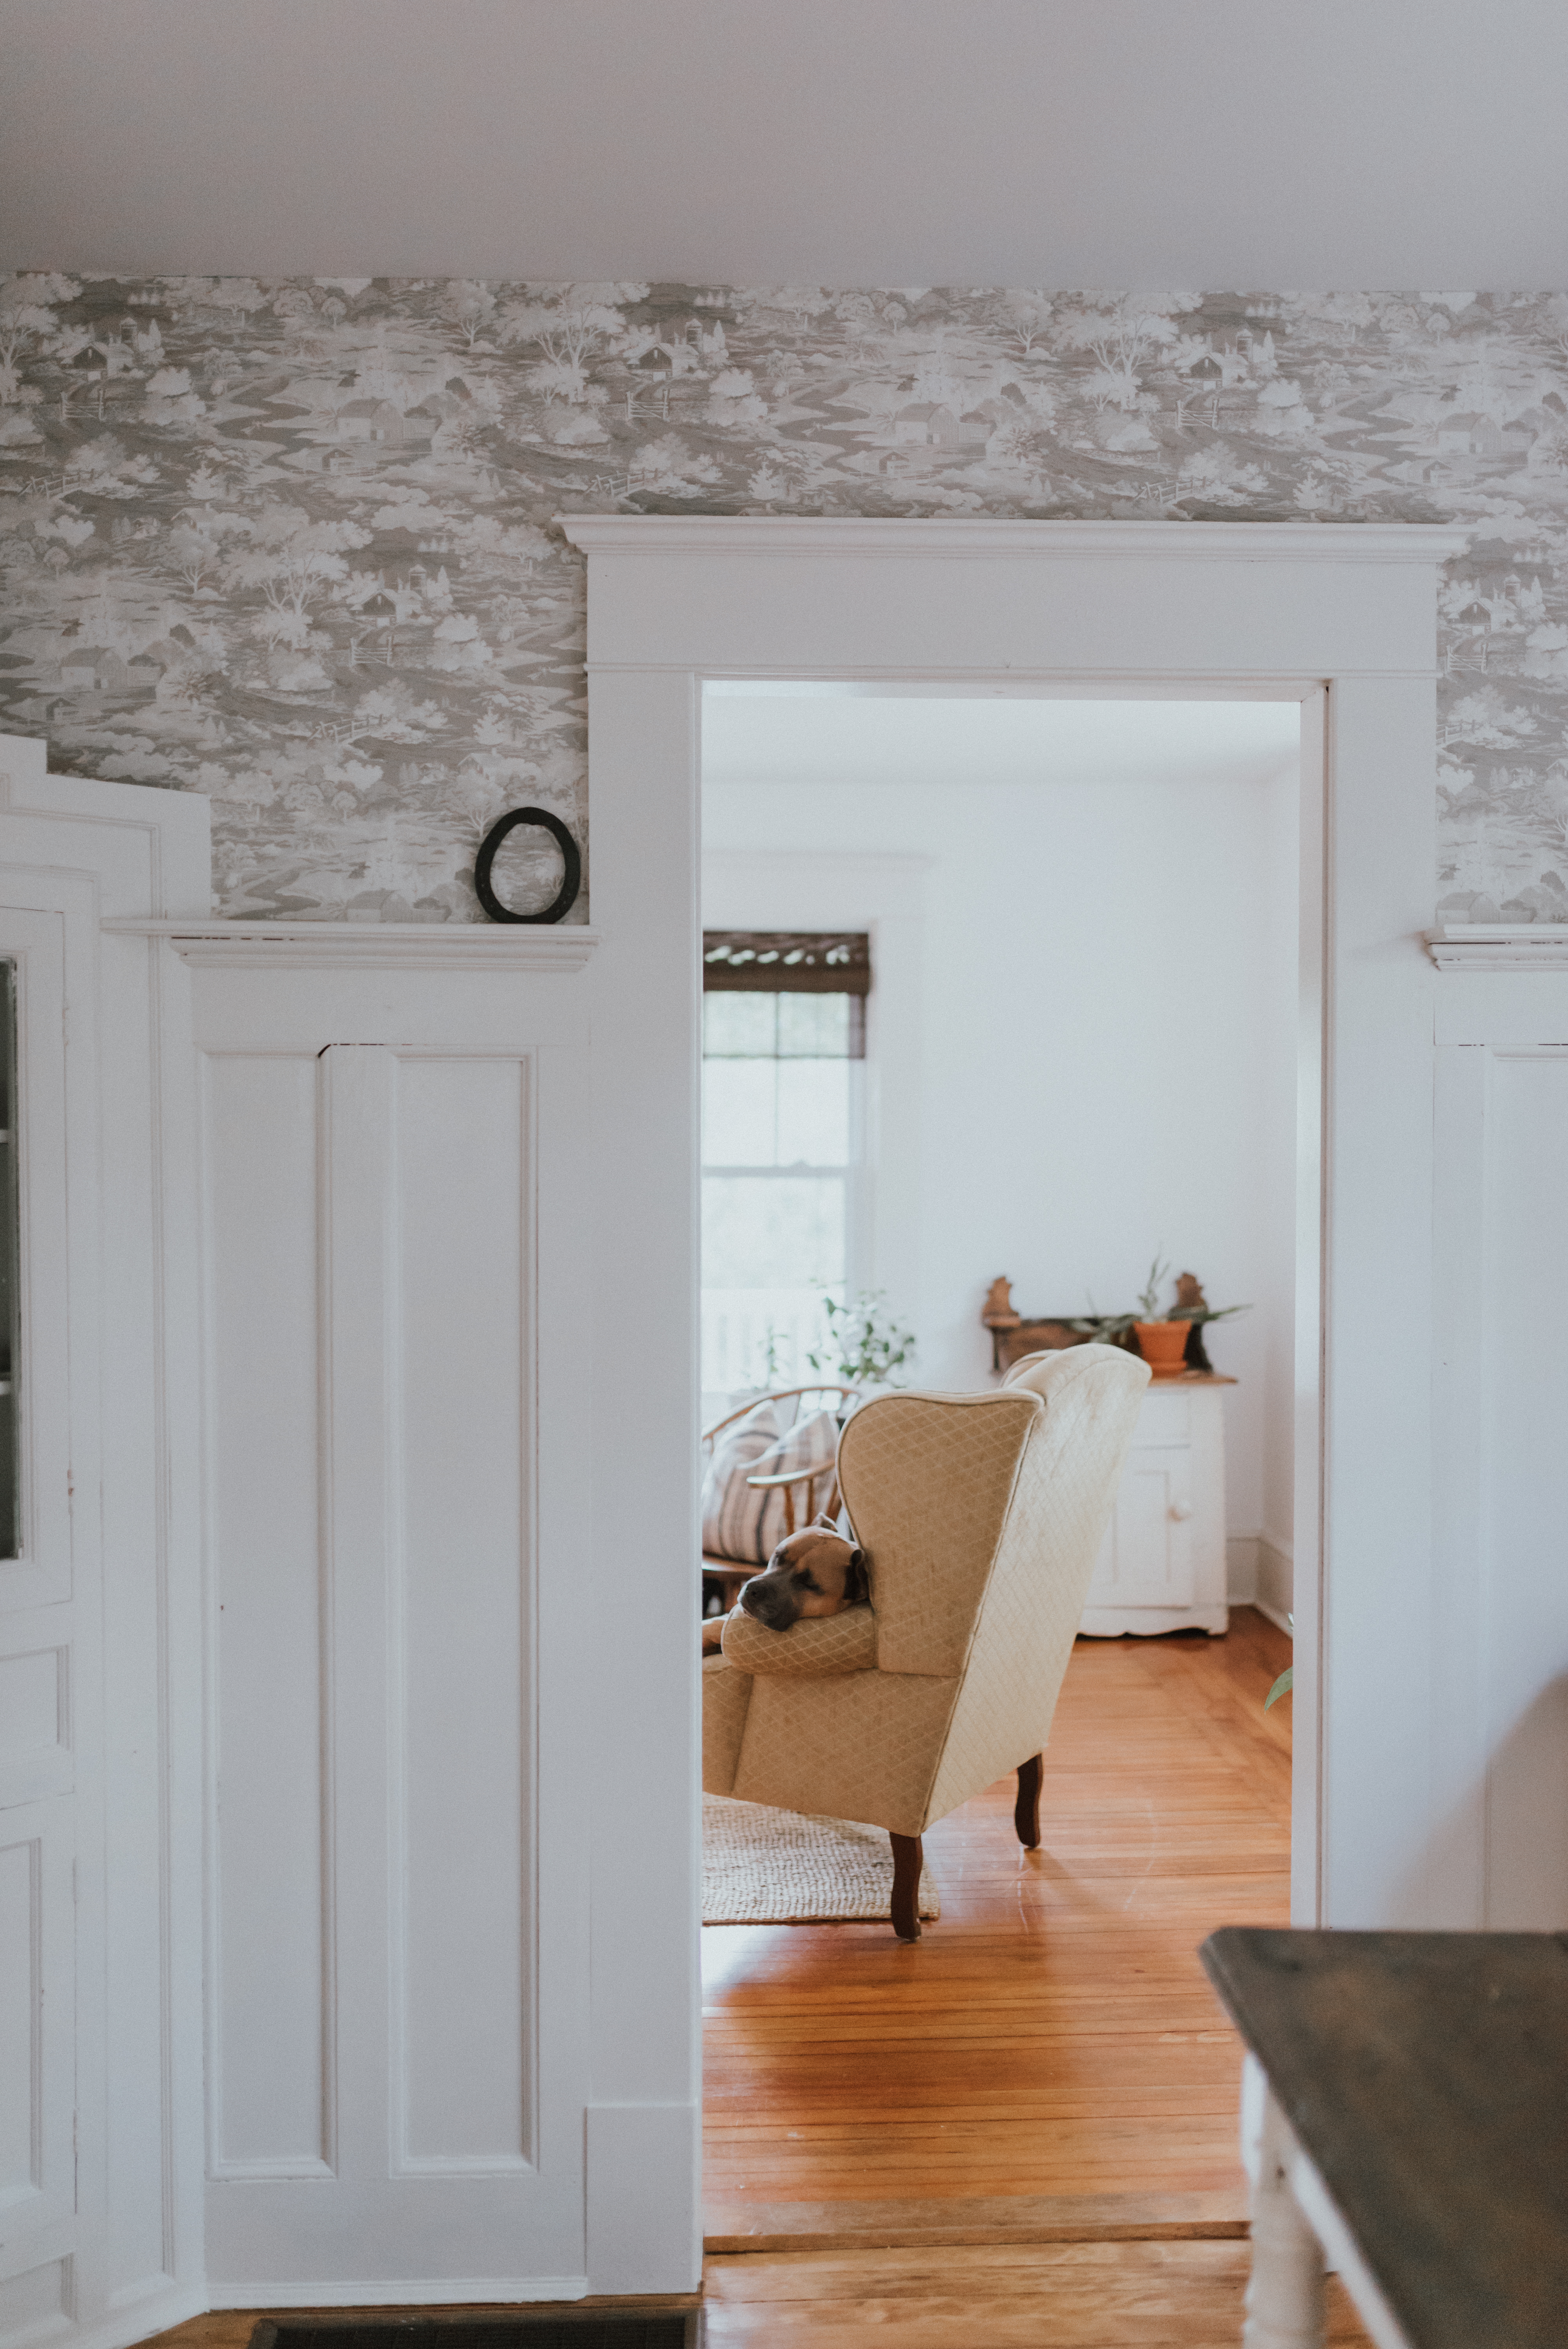 The Wild Decoelis | Paint and Wallpaper: Our Budget-Friendly Way to Make Over a Home With Home Depot | how to paint stained wood trim white